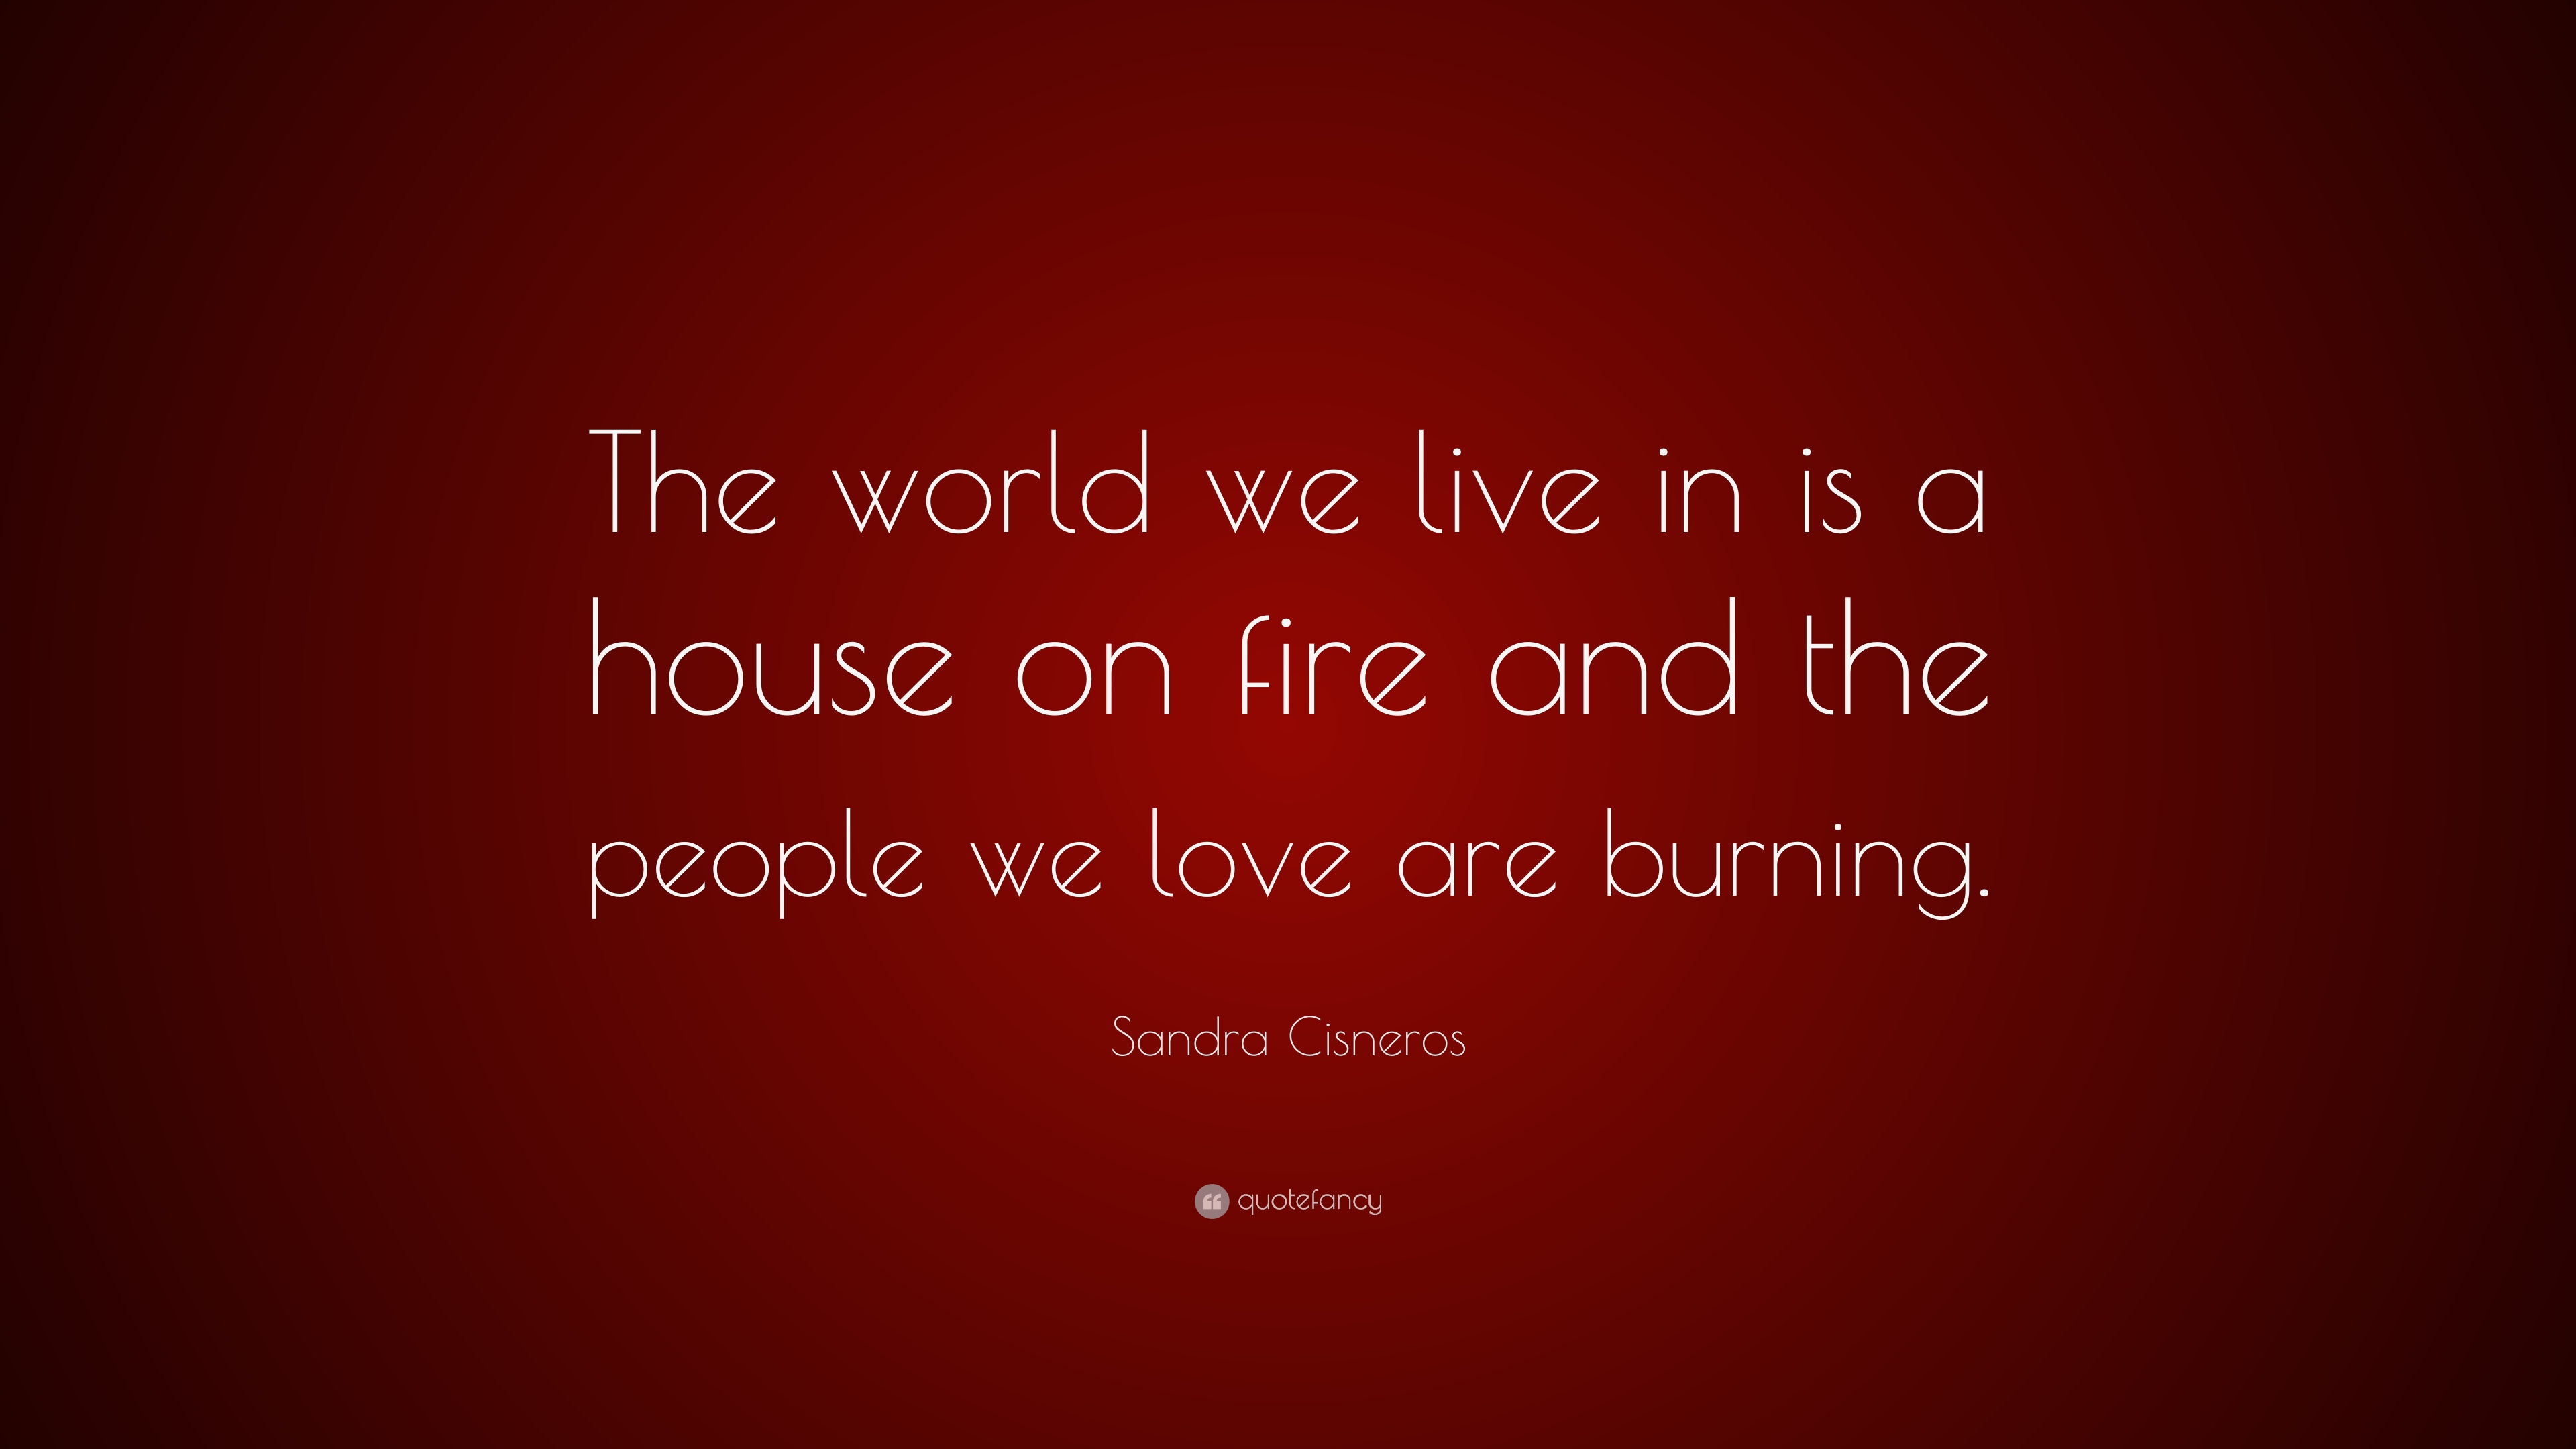 Sandra Cisneros Quote The World We Live In Is A House On Fire And